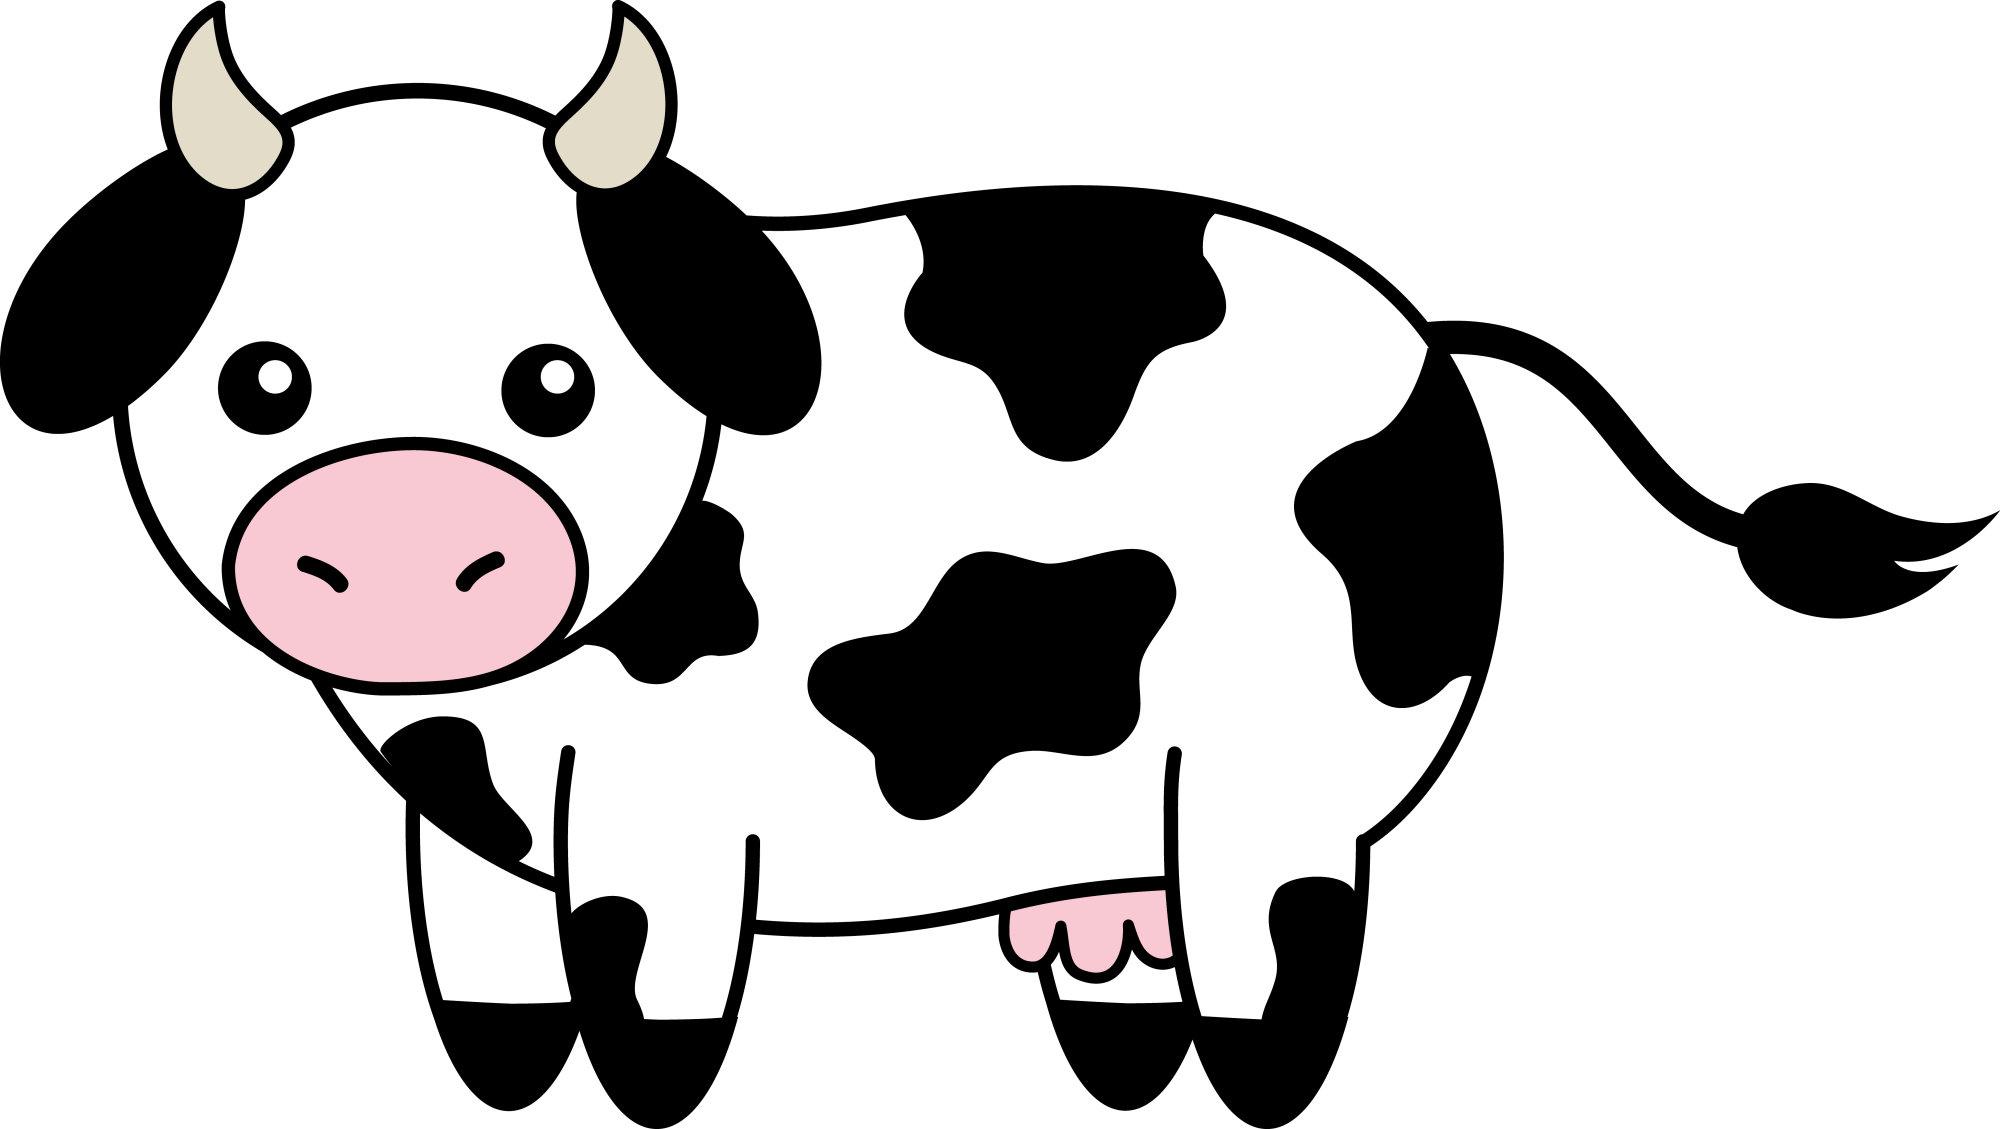 hight resolution of cow head clipart black and white clipart library free clipart images